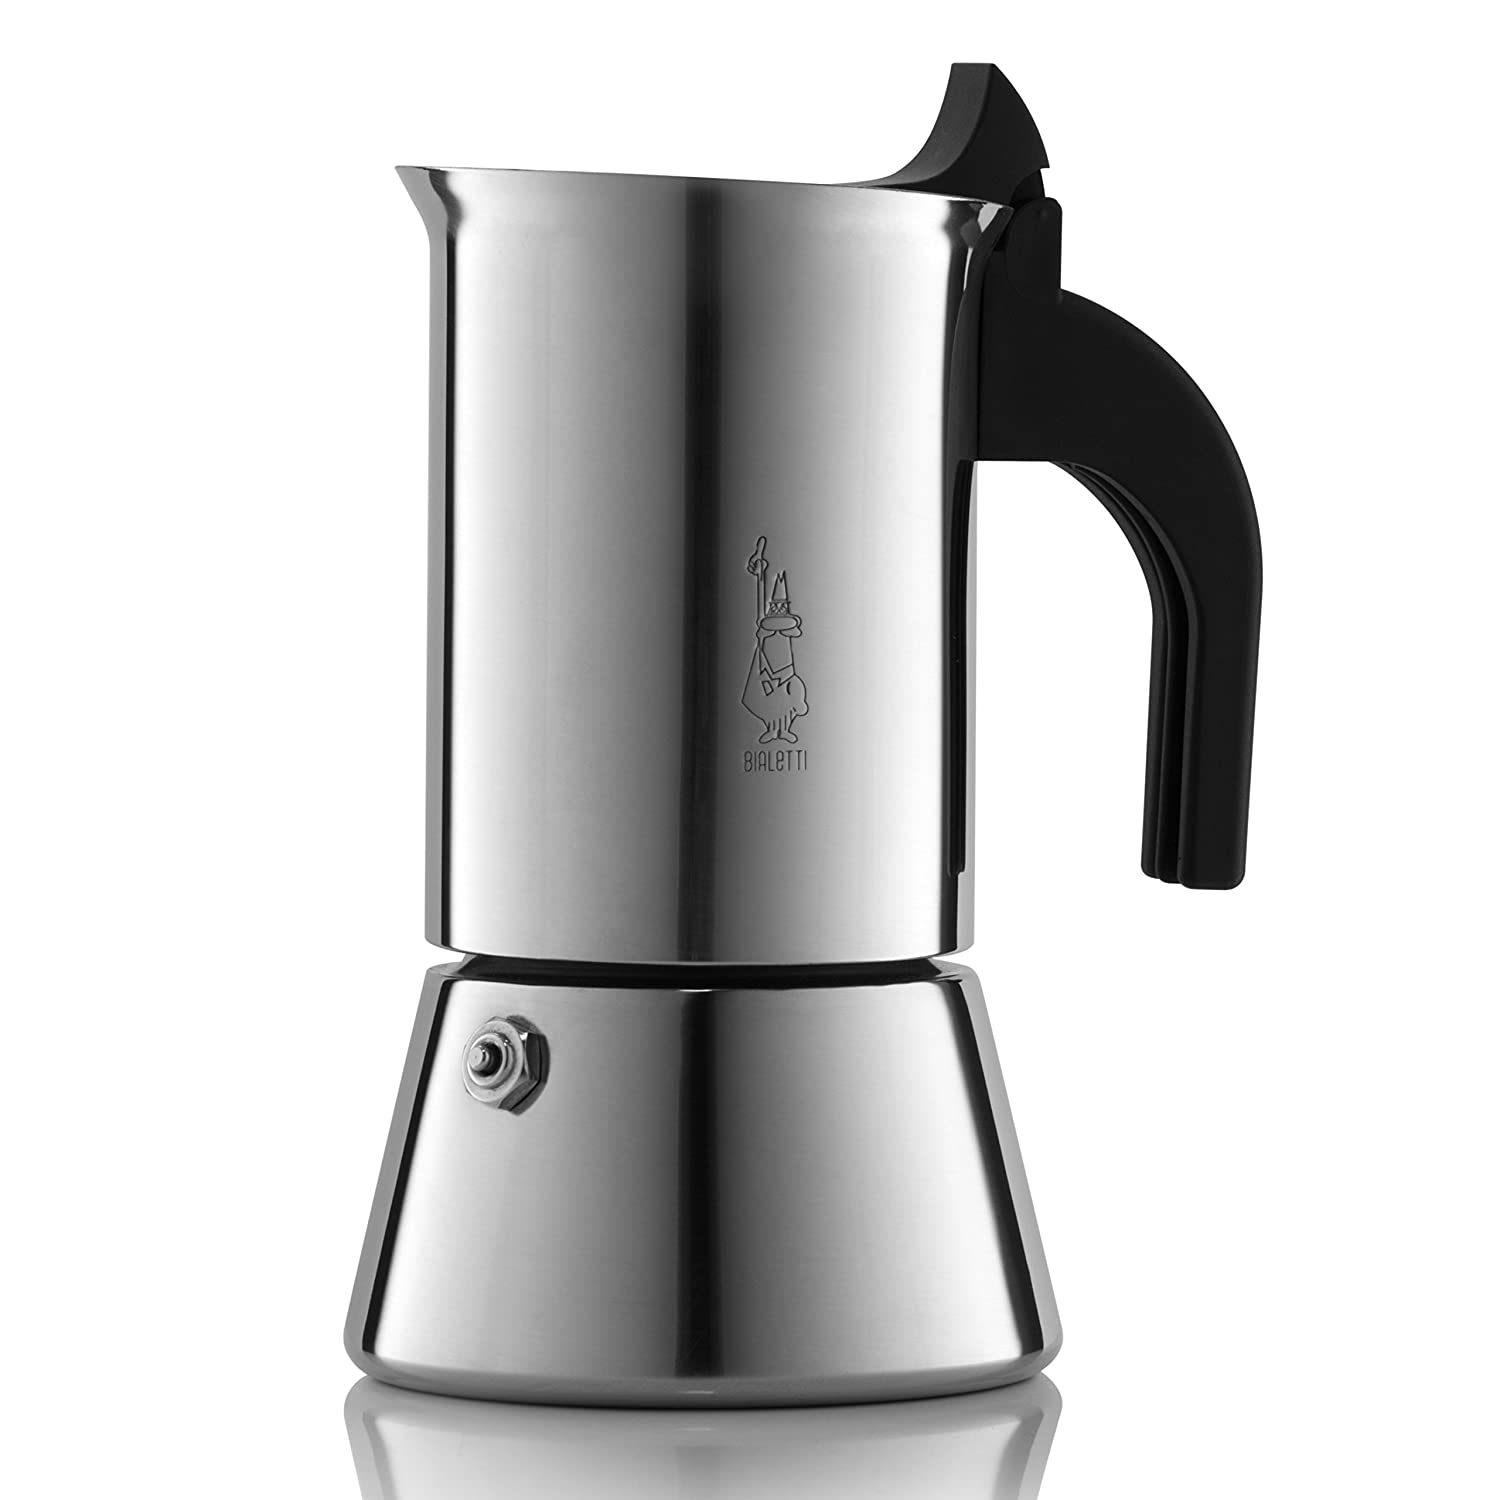 Bialetti Venus Espresso Coffee Maker, Stainless Steel, 4 cup